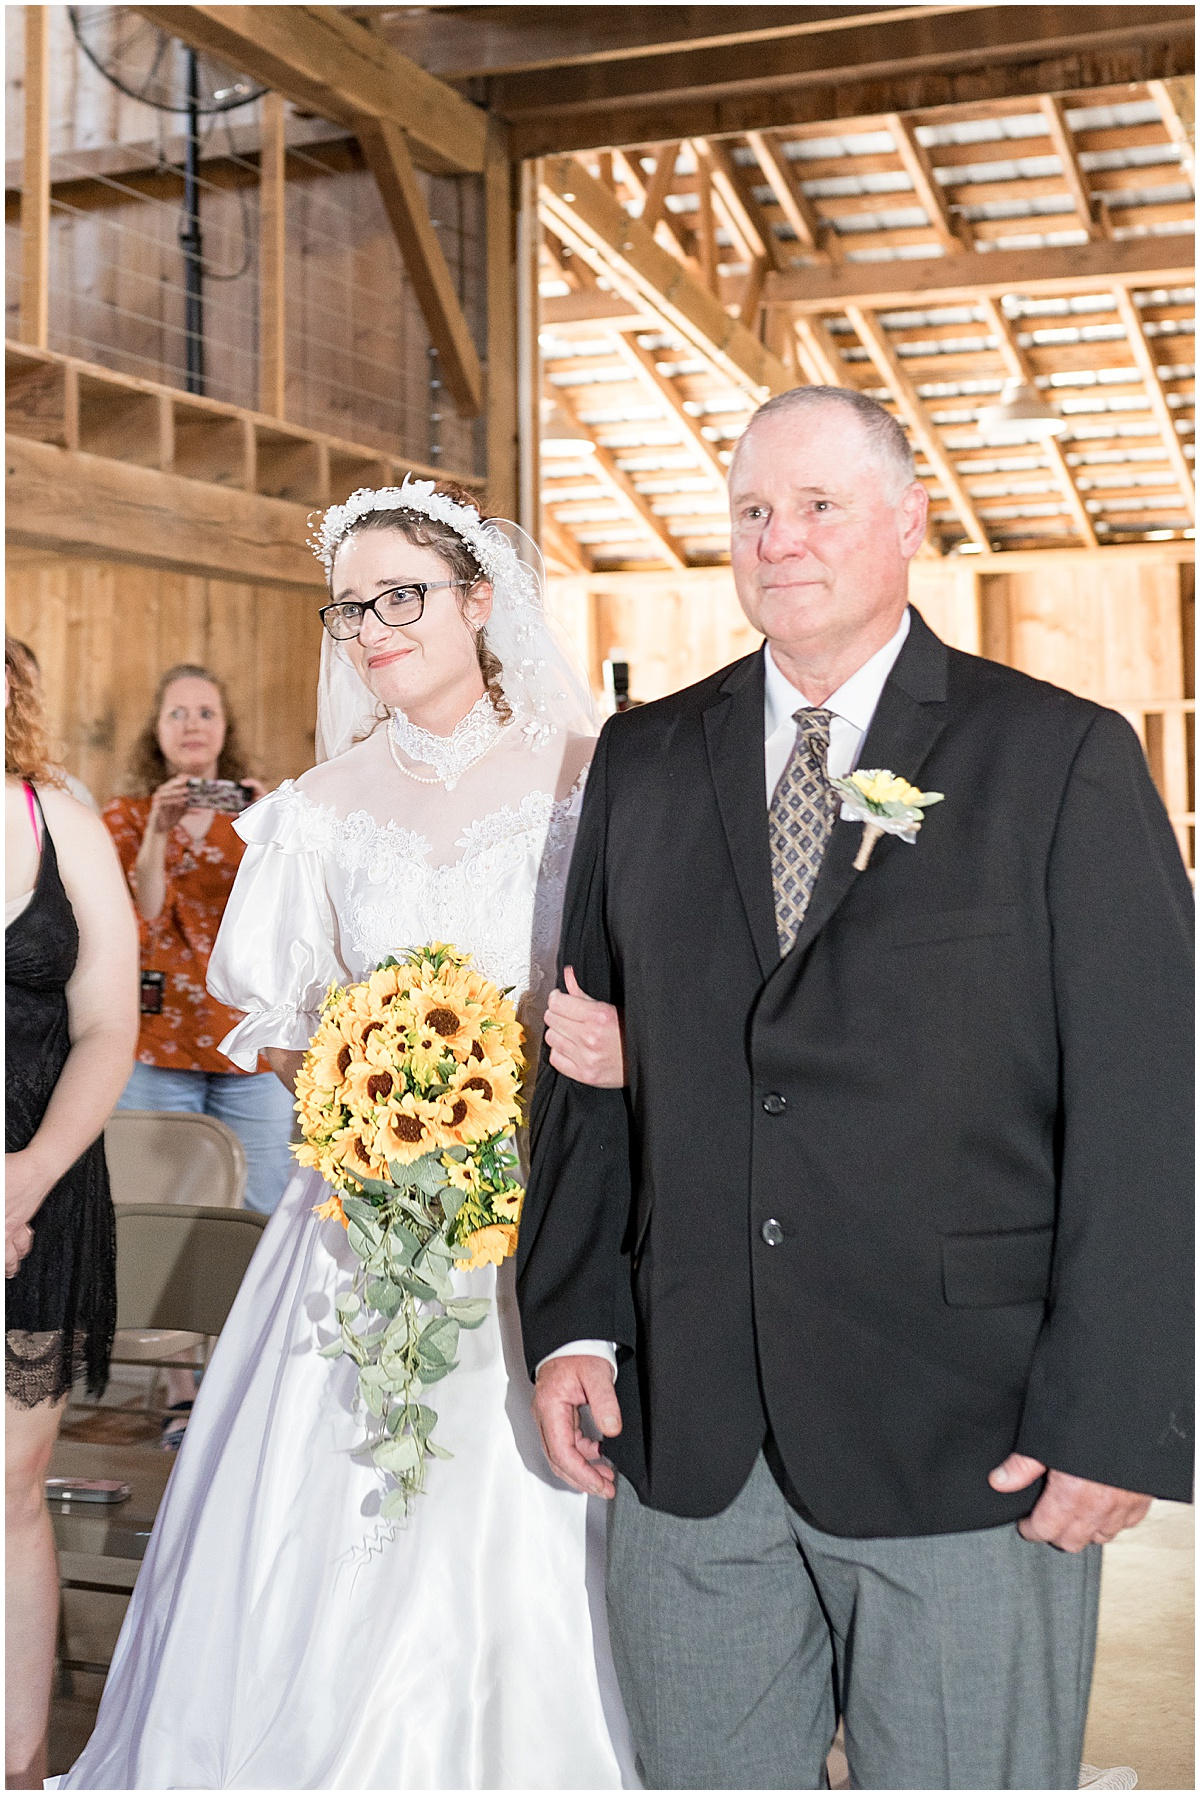 Bride walking down aisle at Exploration Acres wedding in Lafayette, Indiana